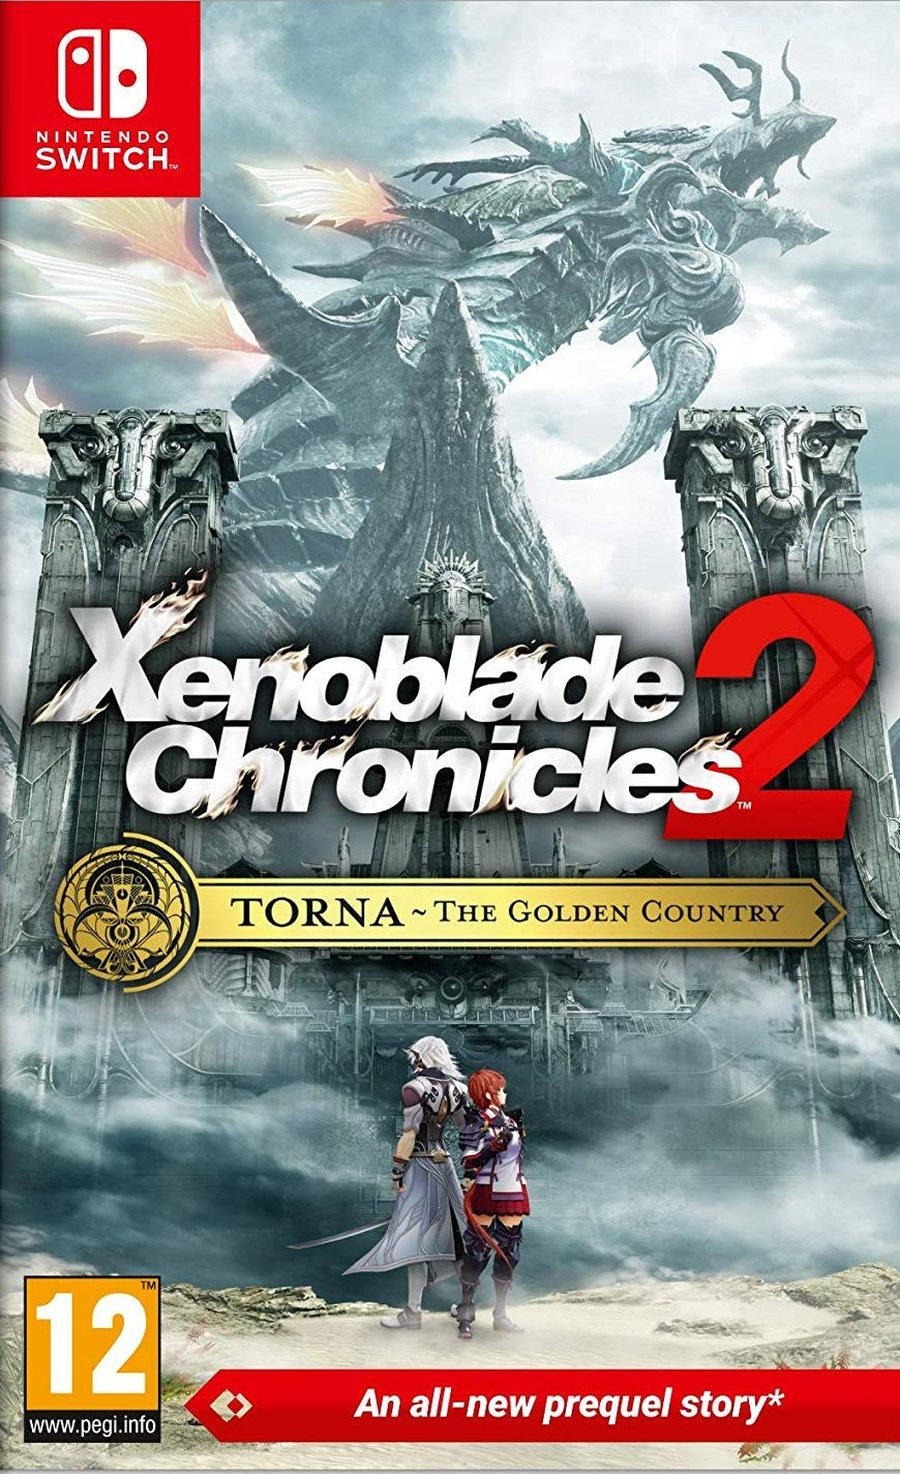 SWITCH Xenoblade Chronicles 2: Torna - The Golden Country